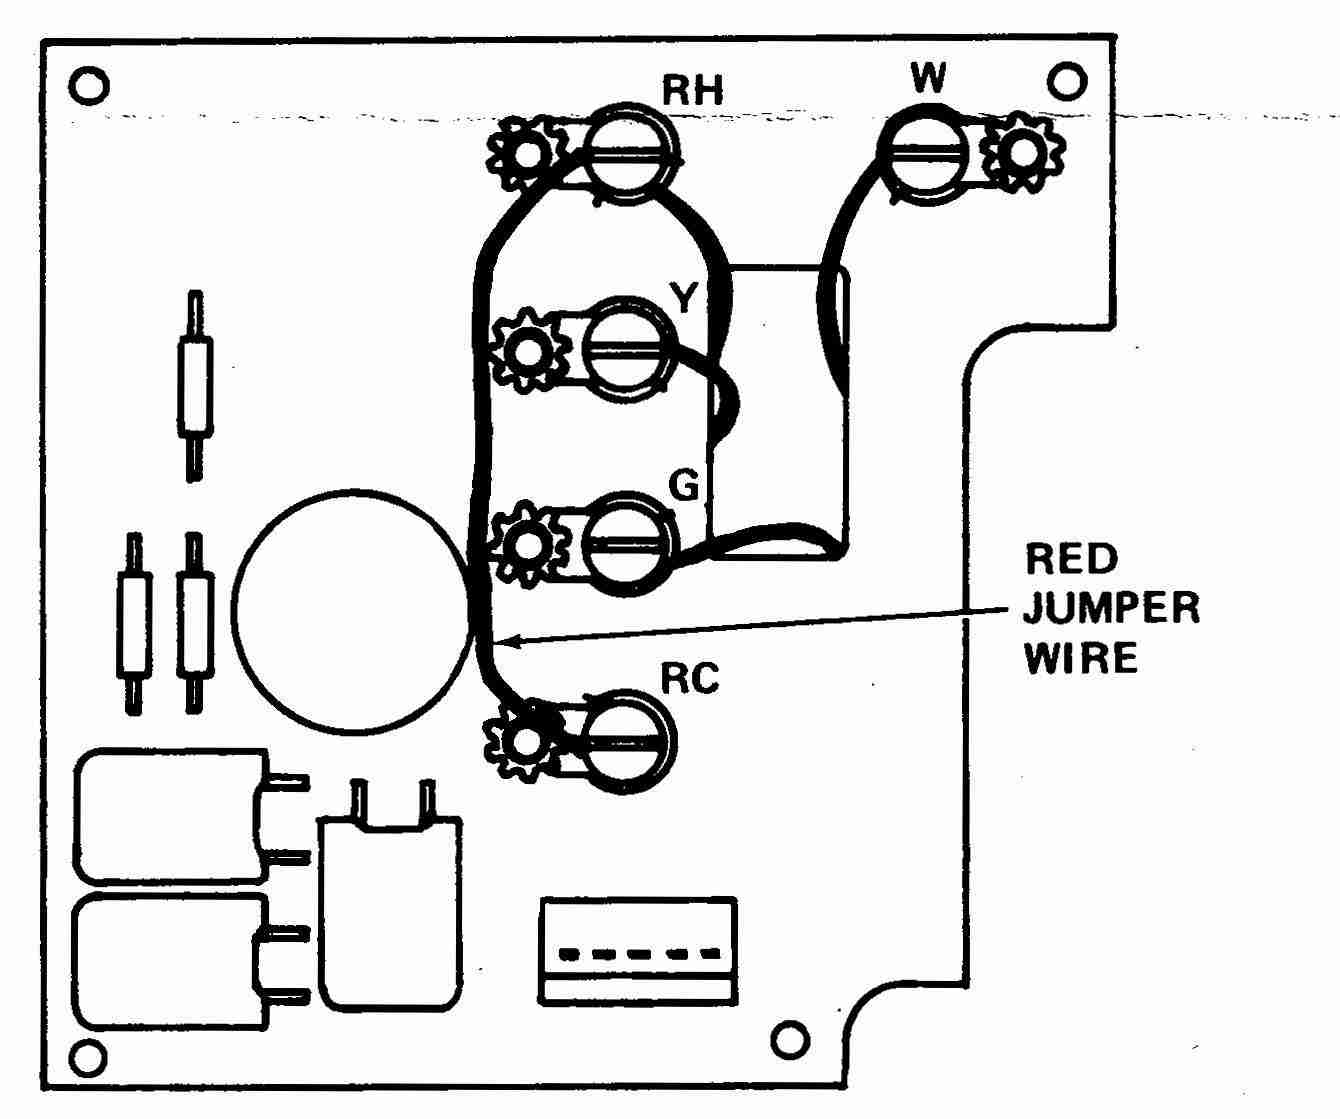 room stat wiring diagram headlight switch thermostat diagrams for hvac systems